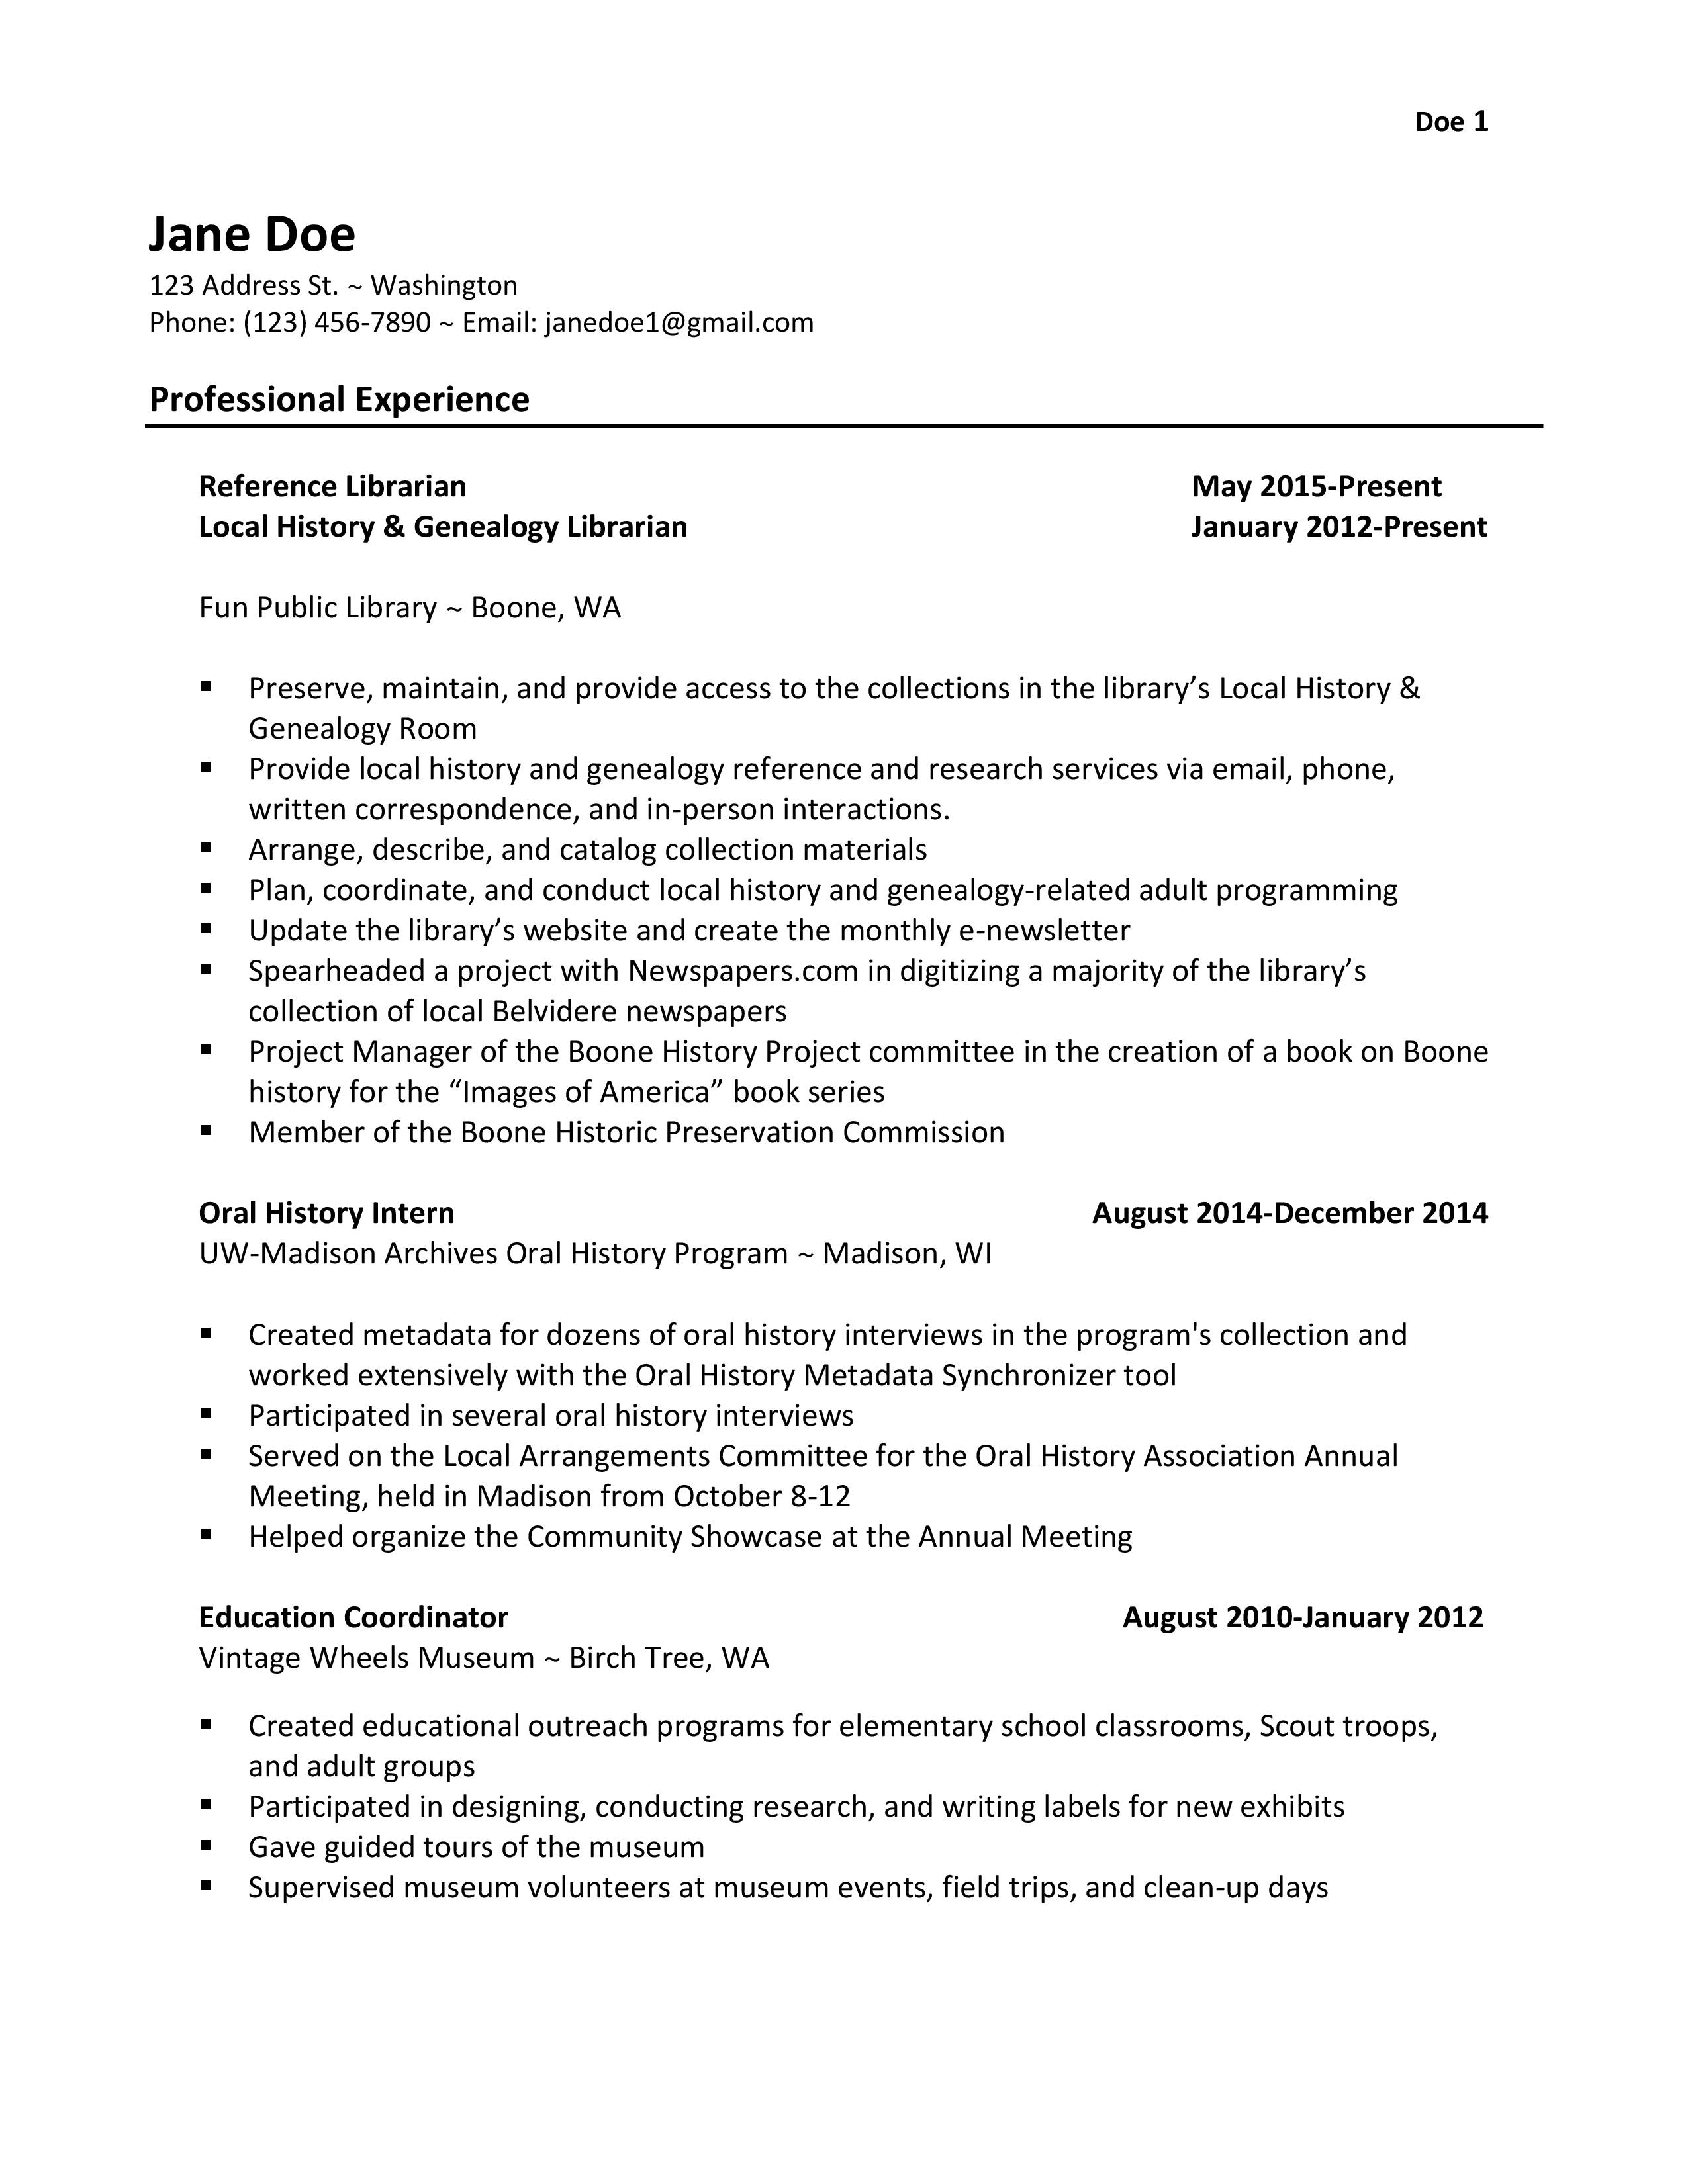 hiring_librarians_cover_letter hiring_librarians_resume_jf_revised 0 hiring_librarians_resume_jf_revised 1 hiring_librarians_resume_jf_revised 2